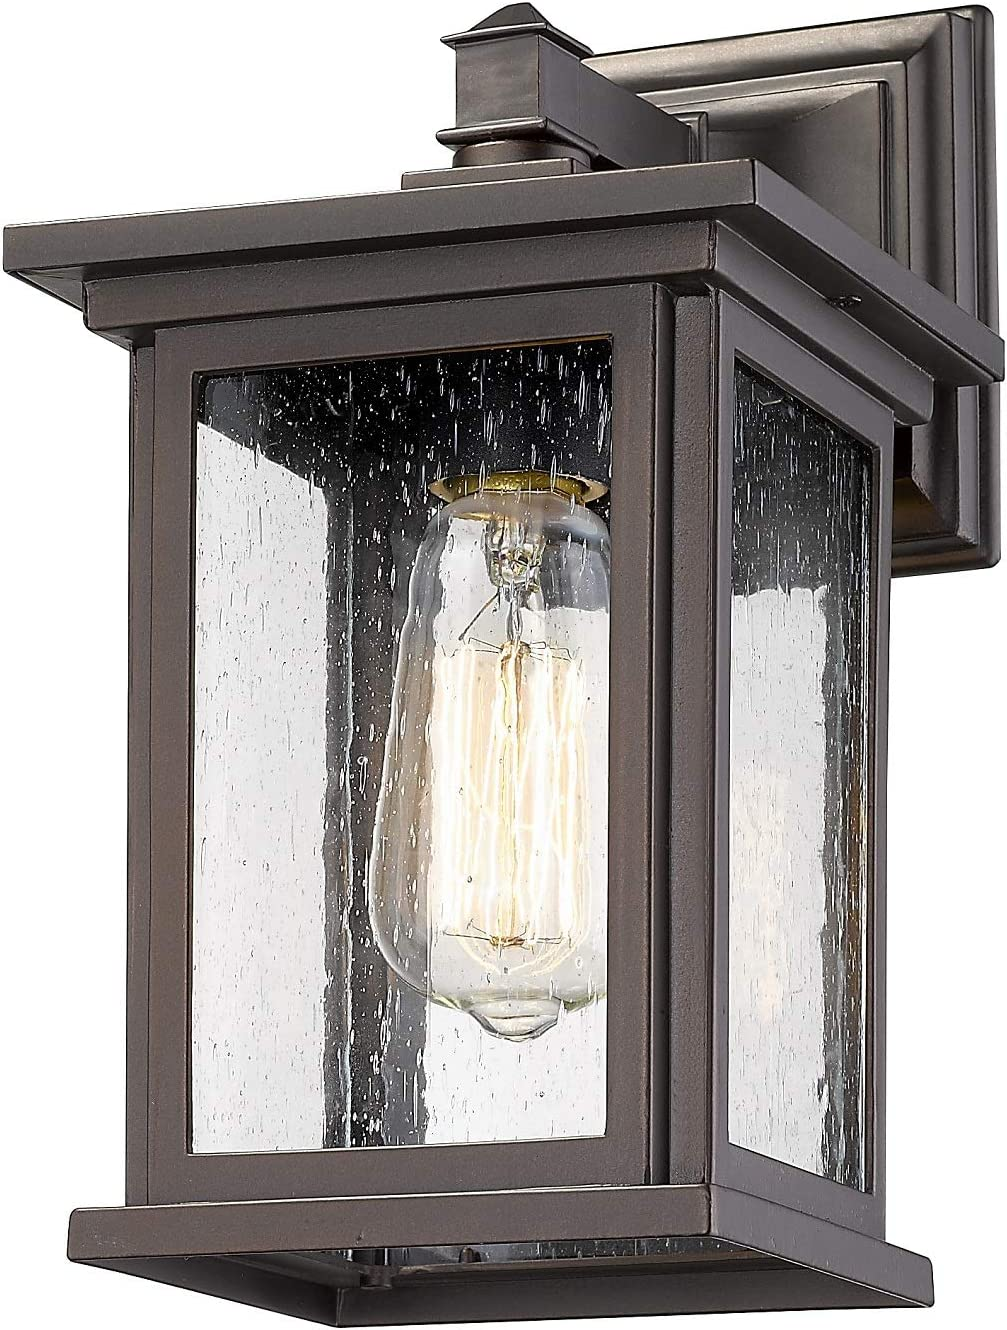 sold wholesale out Bestshared Outdoor Wall Light Exterior Fixture Mount